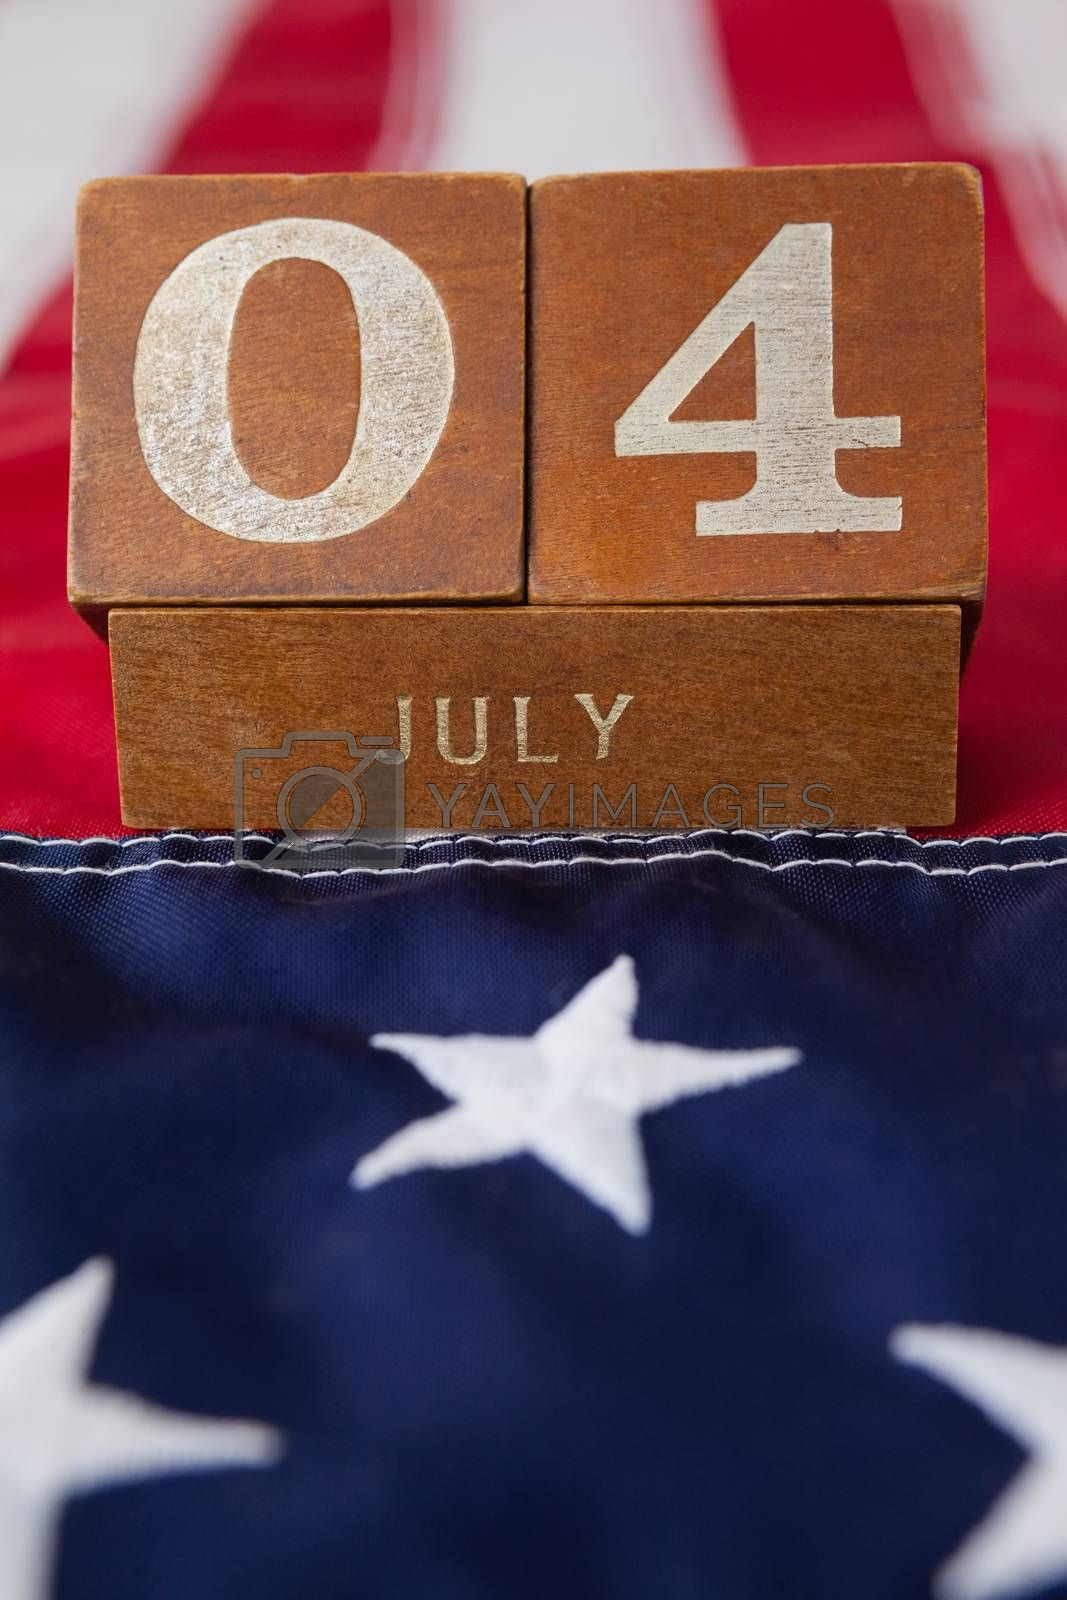 Dates blocks on American flag with 4th july theme by Wavebreakmedia